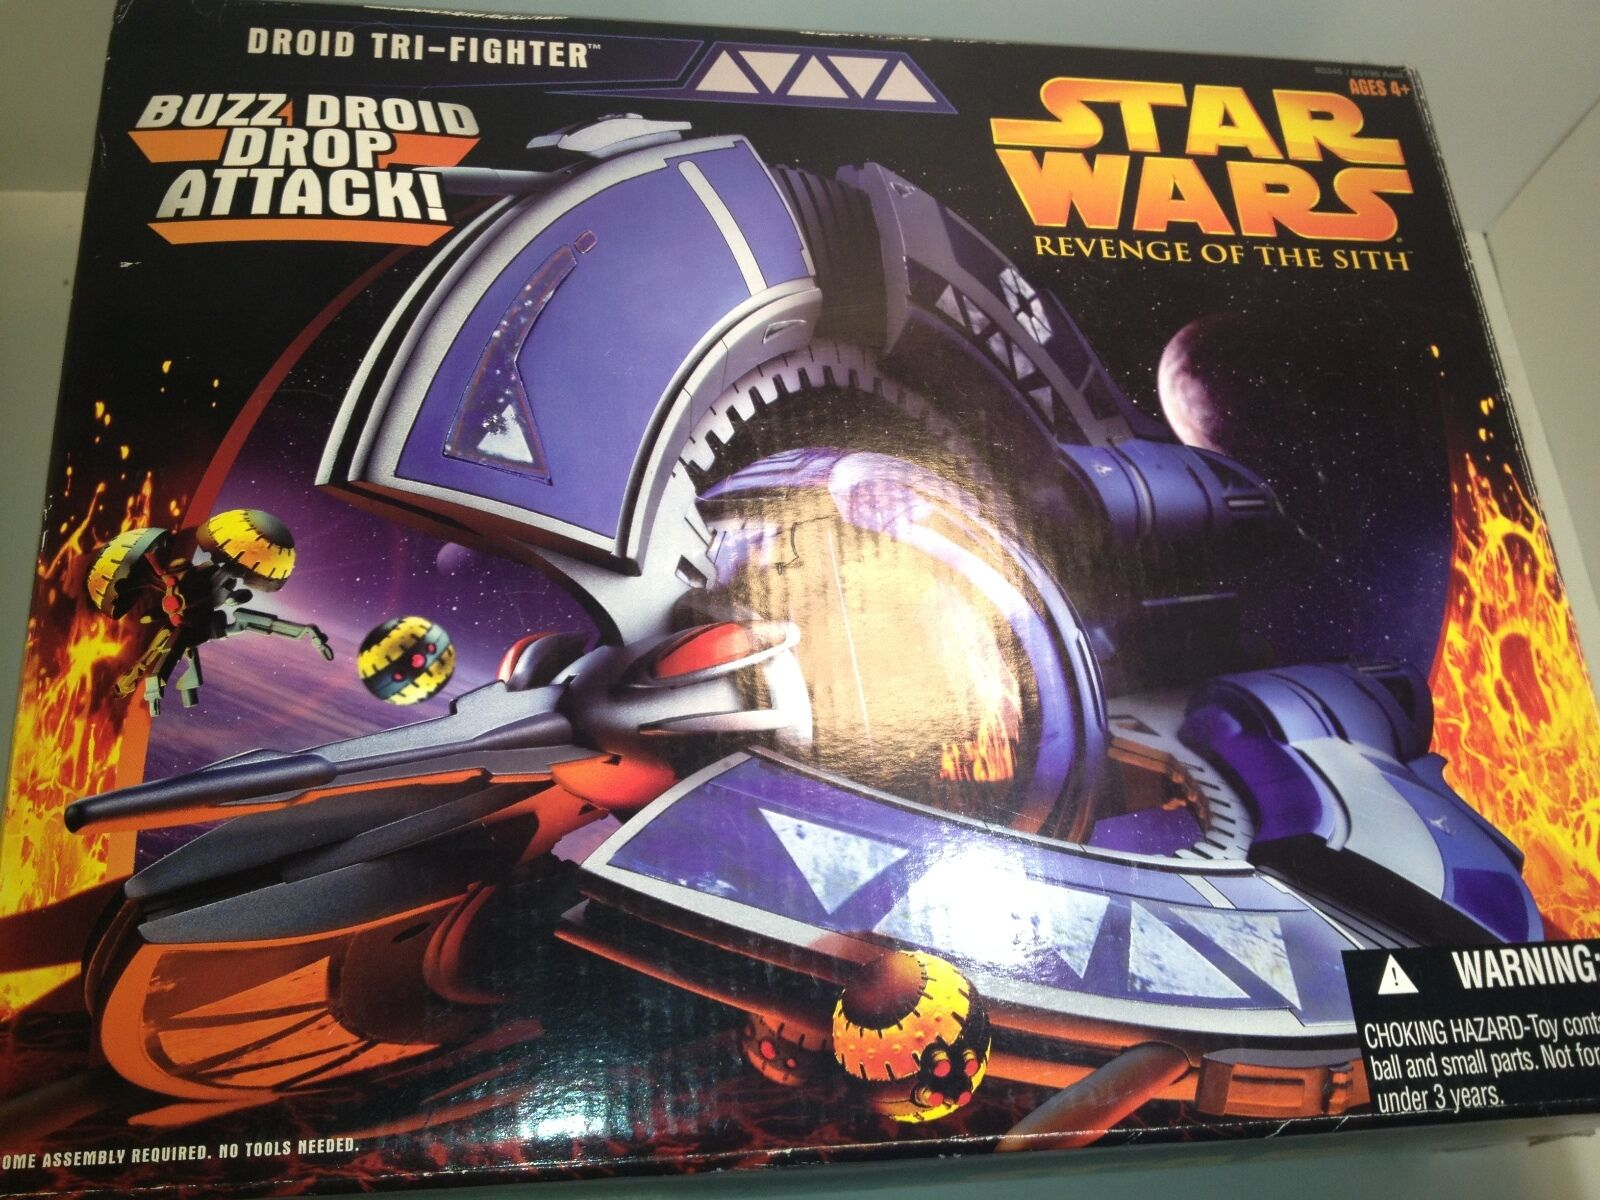 STAR WARS EPISODE 1 DROID DROID DROID TRI FIGHTER W BUZZ DROID DROP    free shipping ad12de